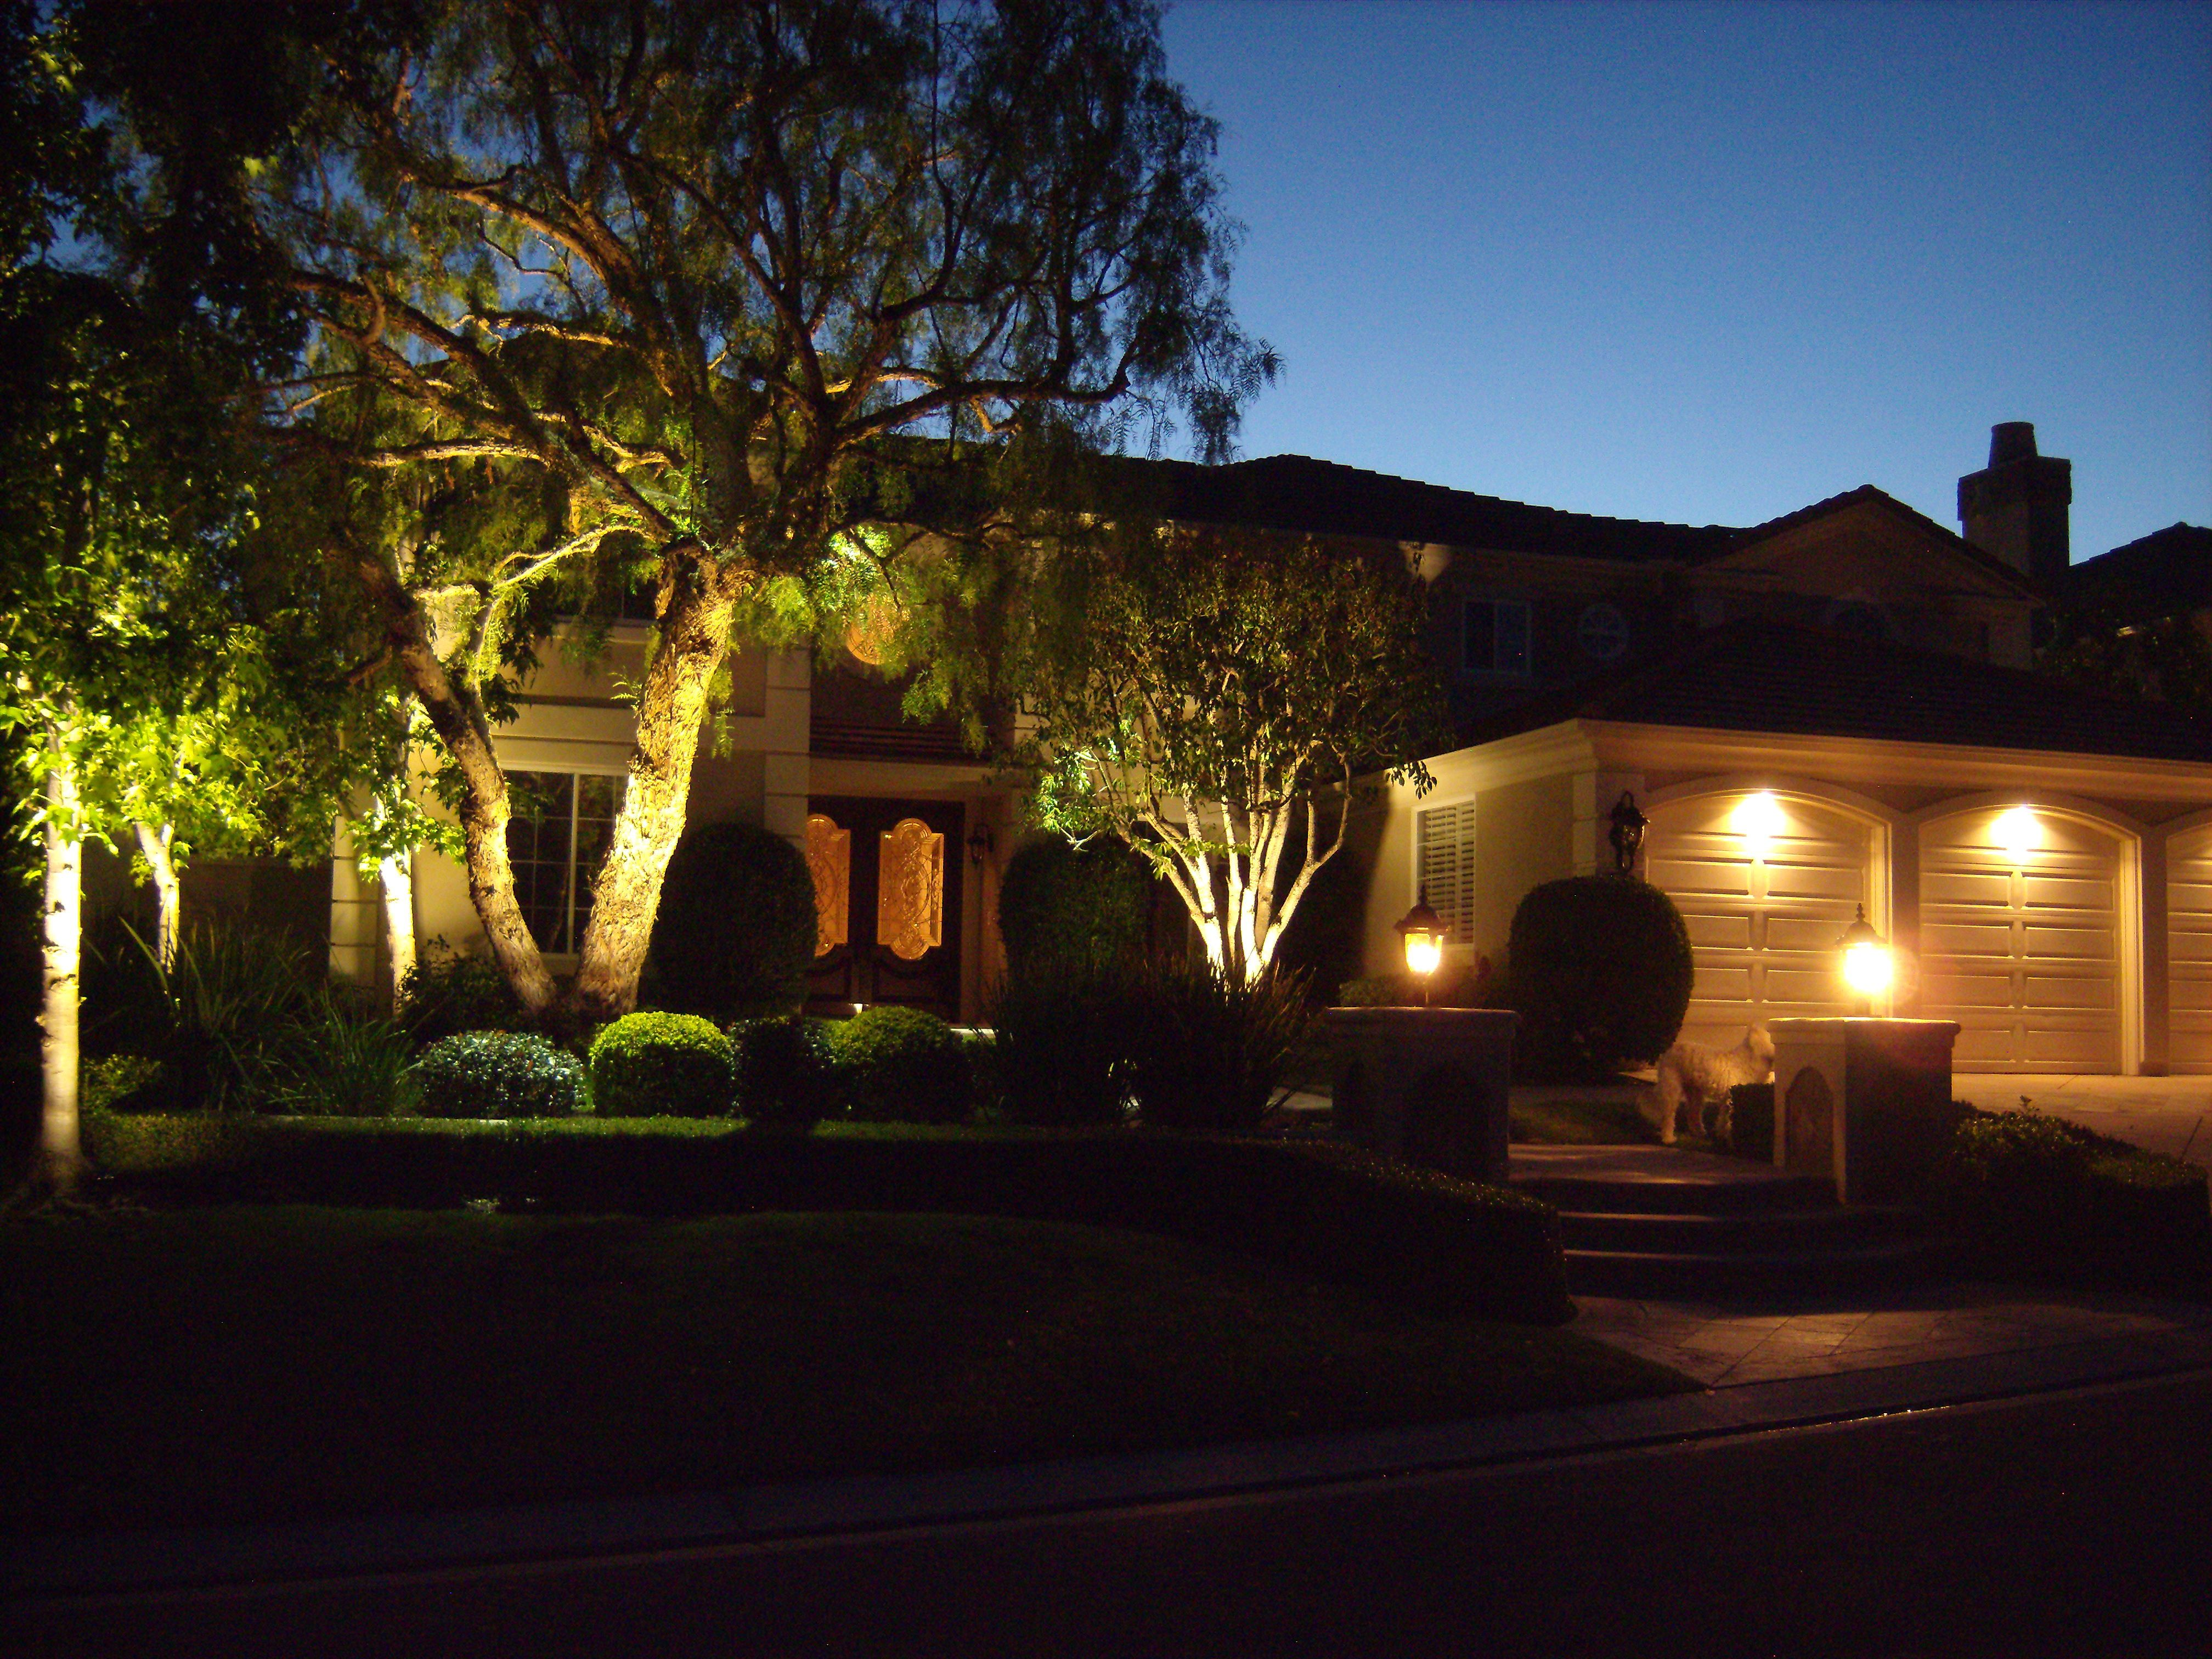 Led Landscape Lighting On Home In Coto De Caza Orange